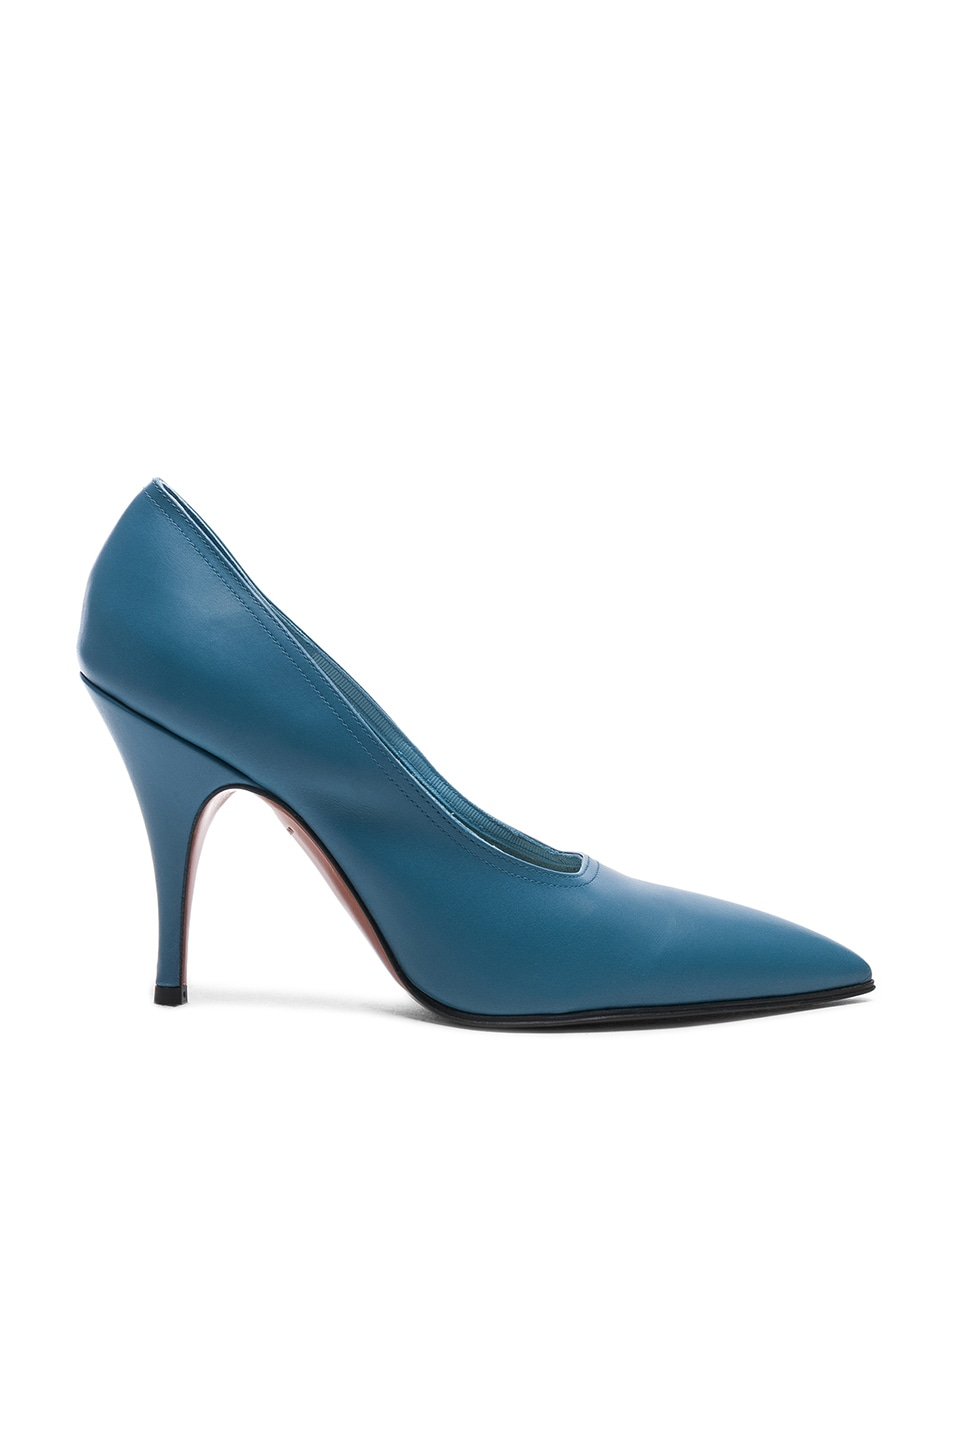 Image 1 of Victoria Beckham Leather Dorothy Stiletto Pumps in Sky